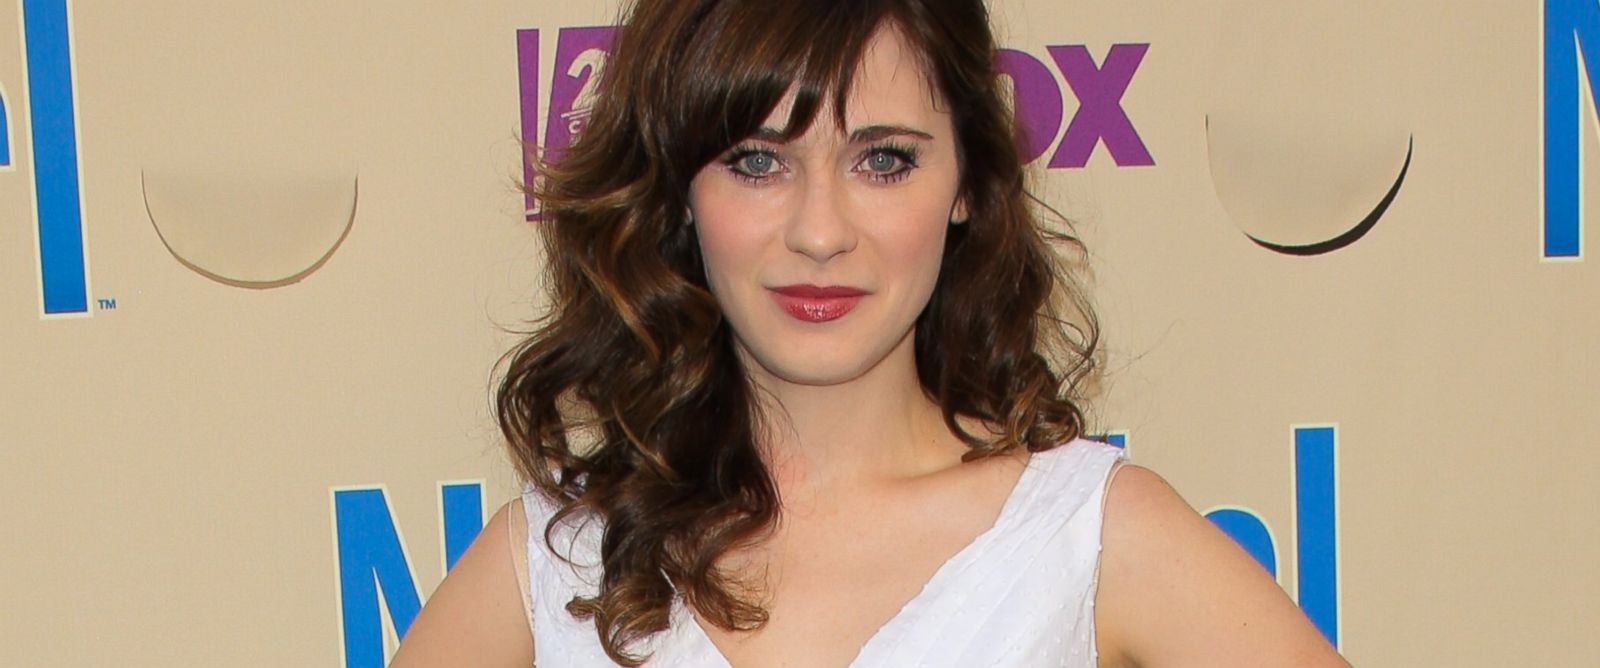 """PHOTO: Actress Zooey Deschanel attends the """"New Girl"""" season 3 screening and cast Q&A at Zanuck Theater at 20th Century Fox Lot on May 8, 2014 in Los Angeles, Calif."""